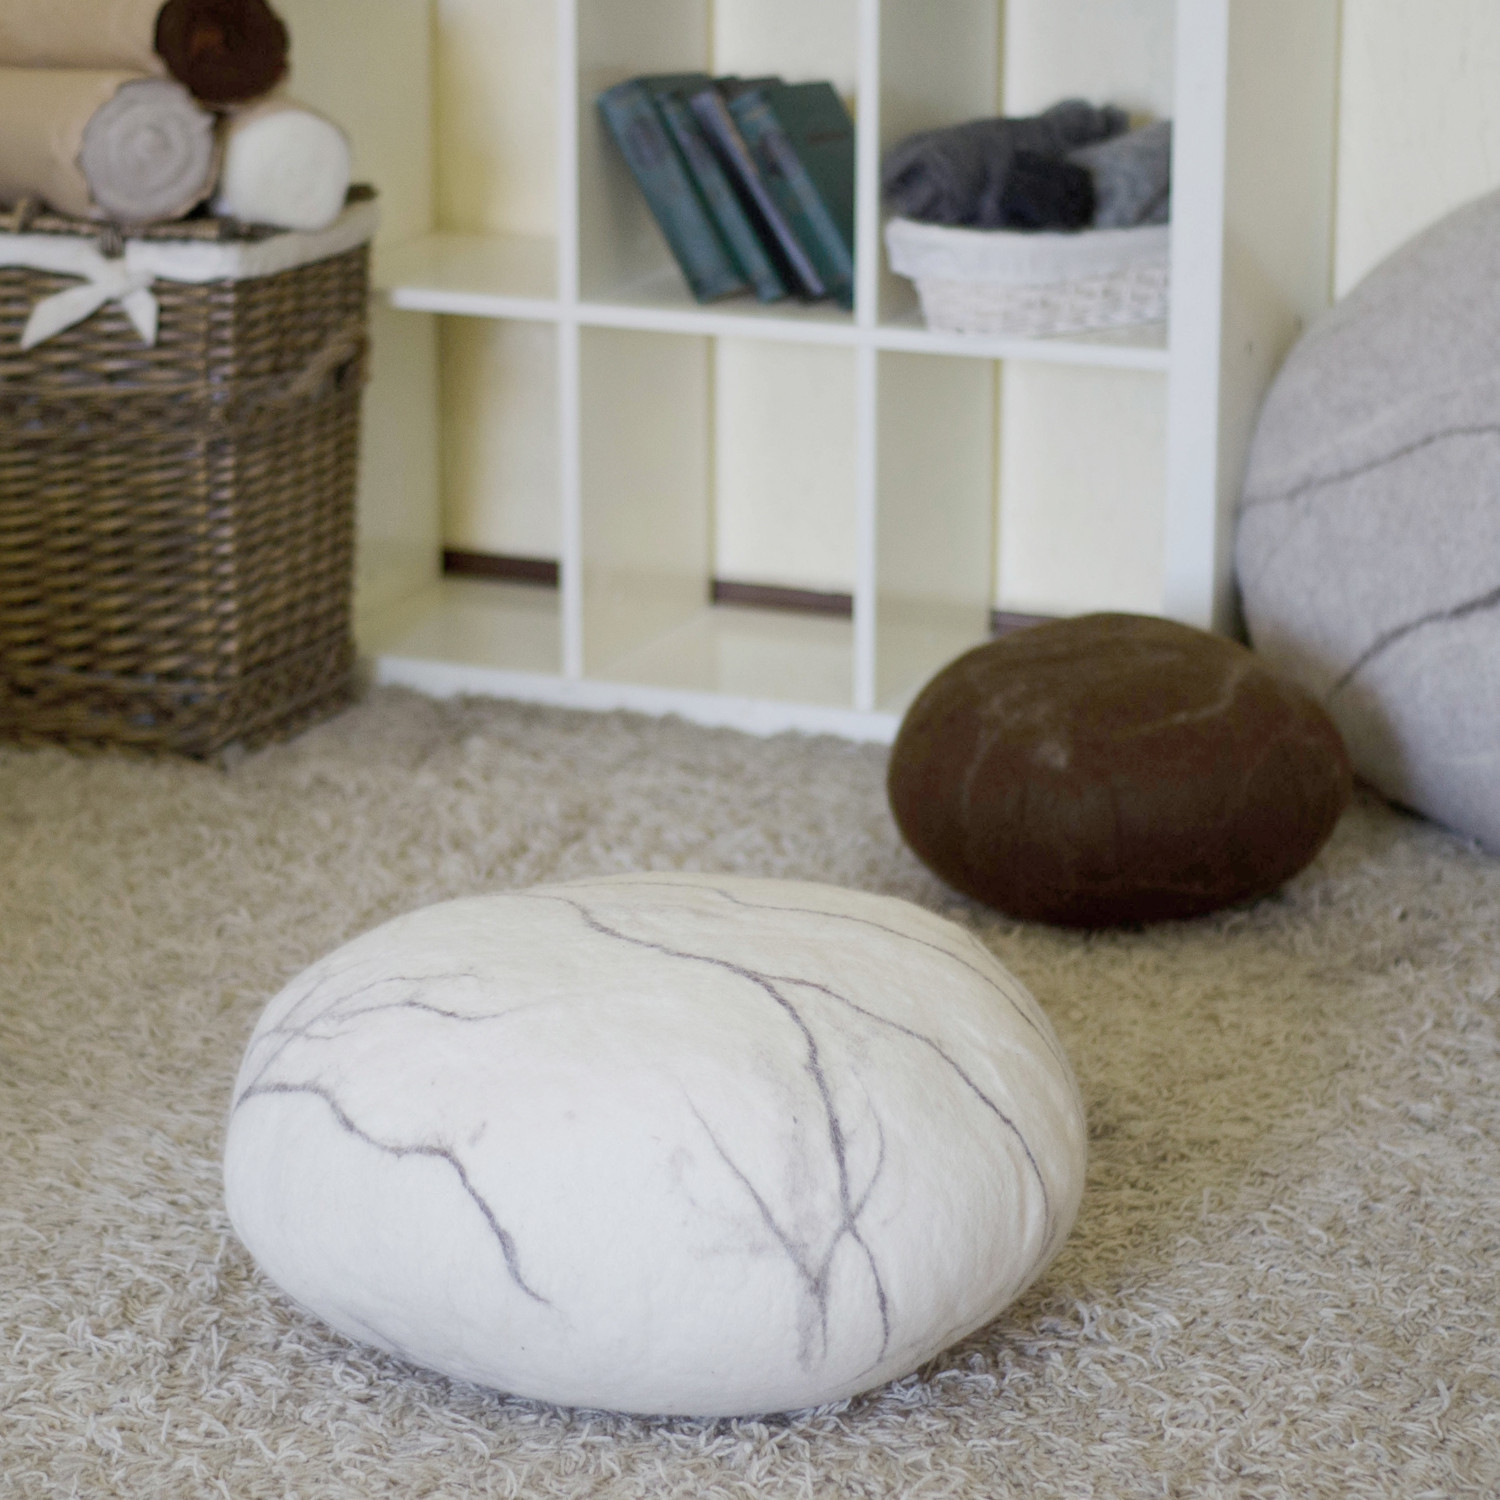 Felted Wool Stone Floor Cushion // Medium (Light Gray) - VladaHom - Touch of Modern